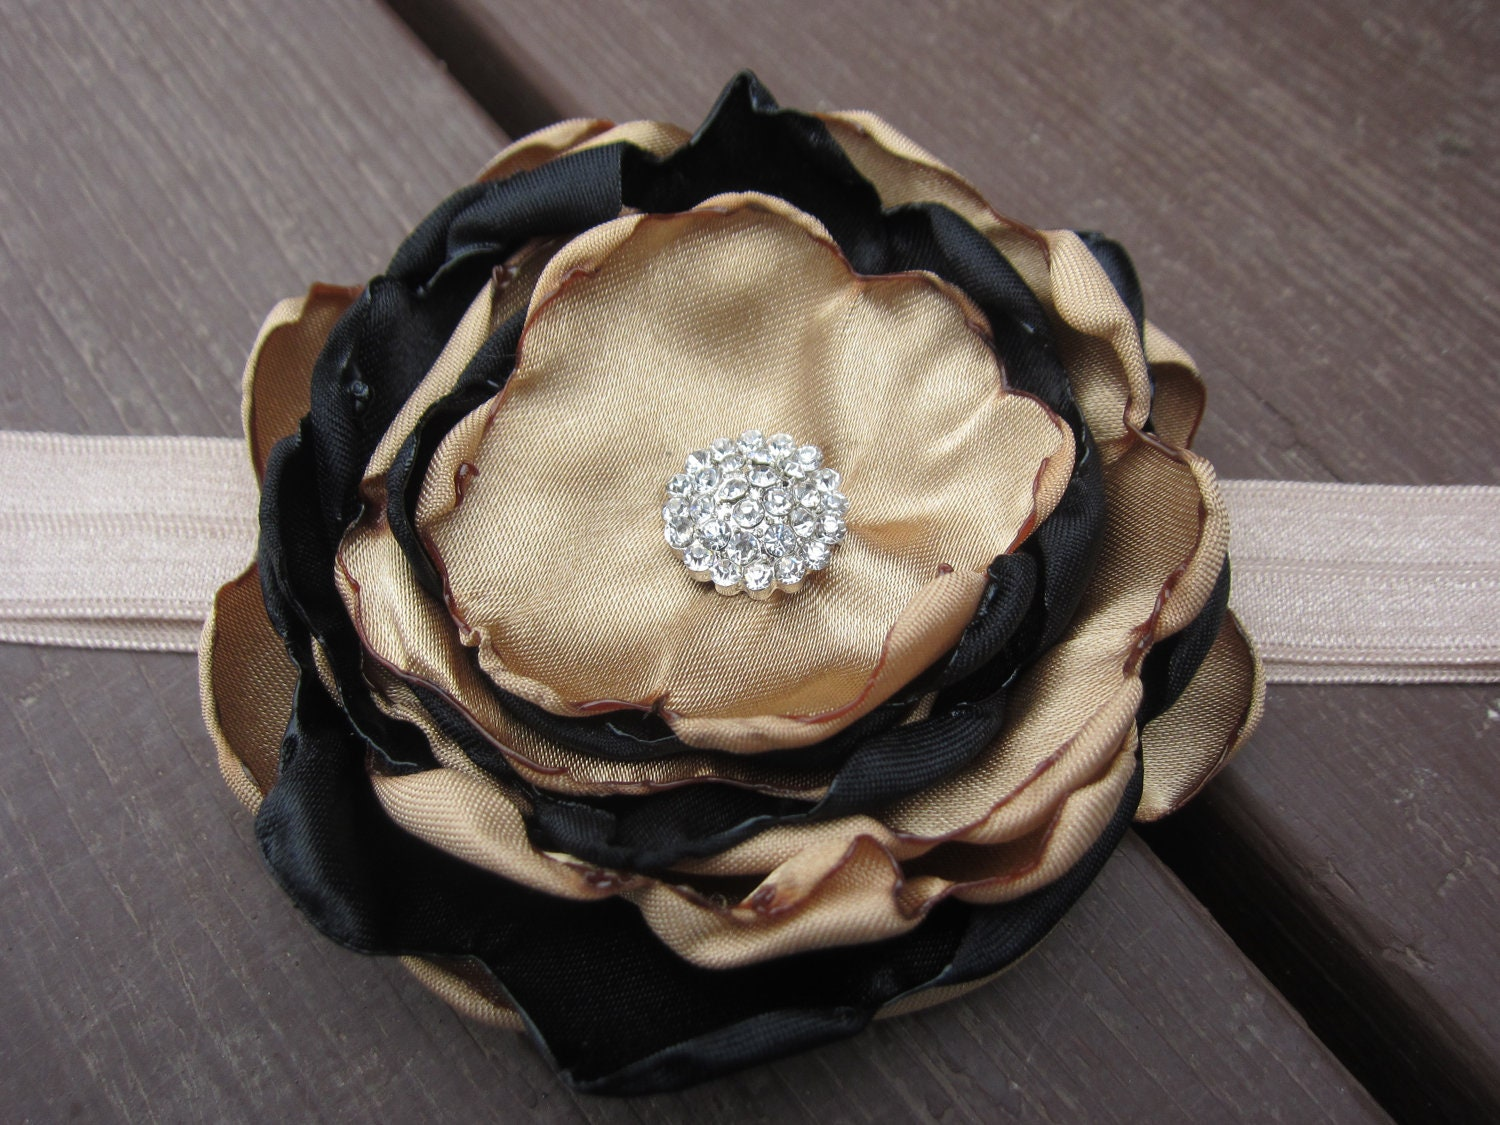 Holiday Gold and Black Satin Fabric Flower  on Golden Beige Elastic Headband with Rhinestones - Christmas, Newborn, Infant, Baby, Toddler